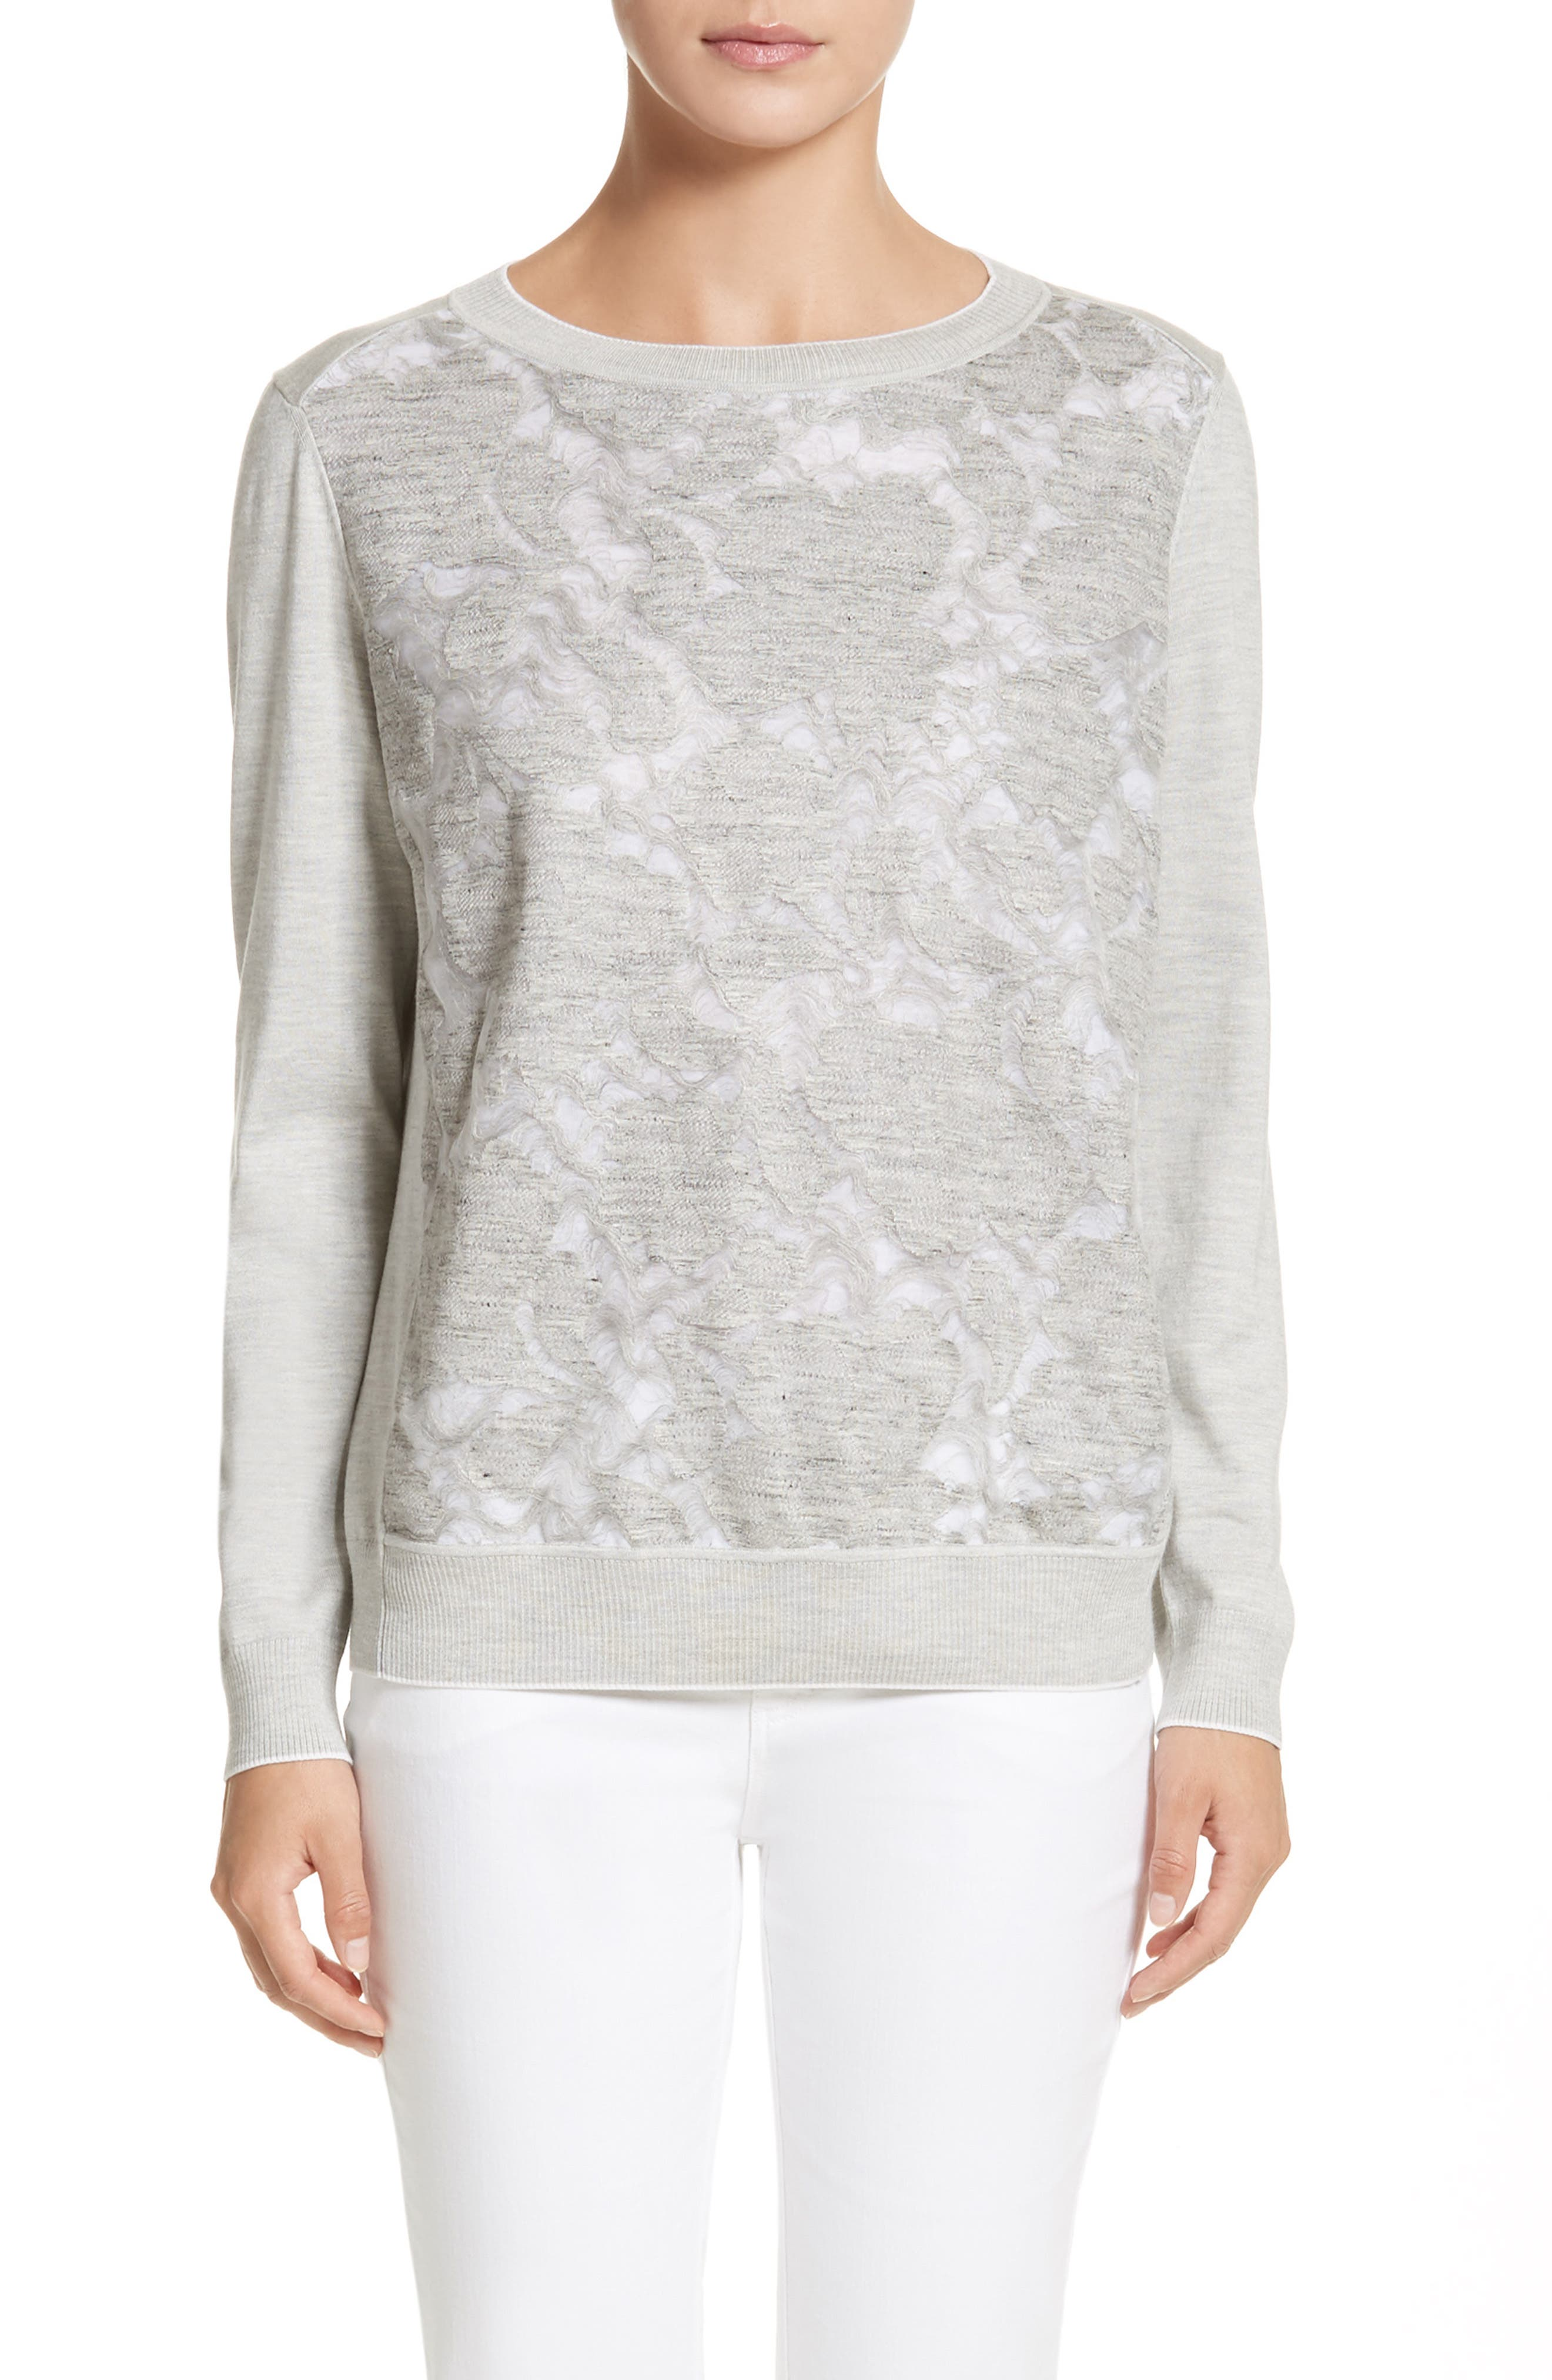 Alternate Image 1 Selected - Lafayette 148 New York Aralynn Top